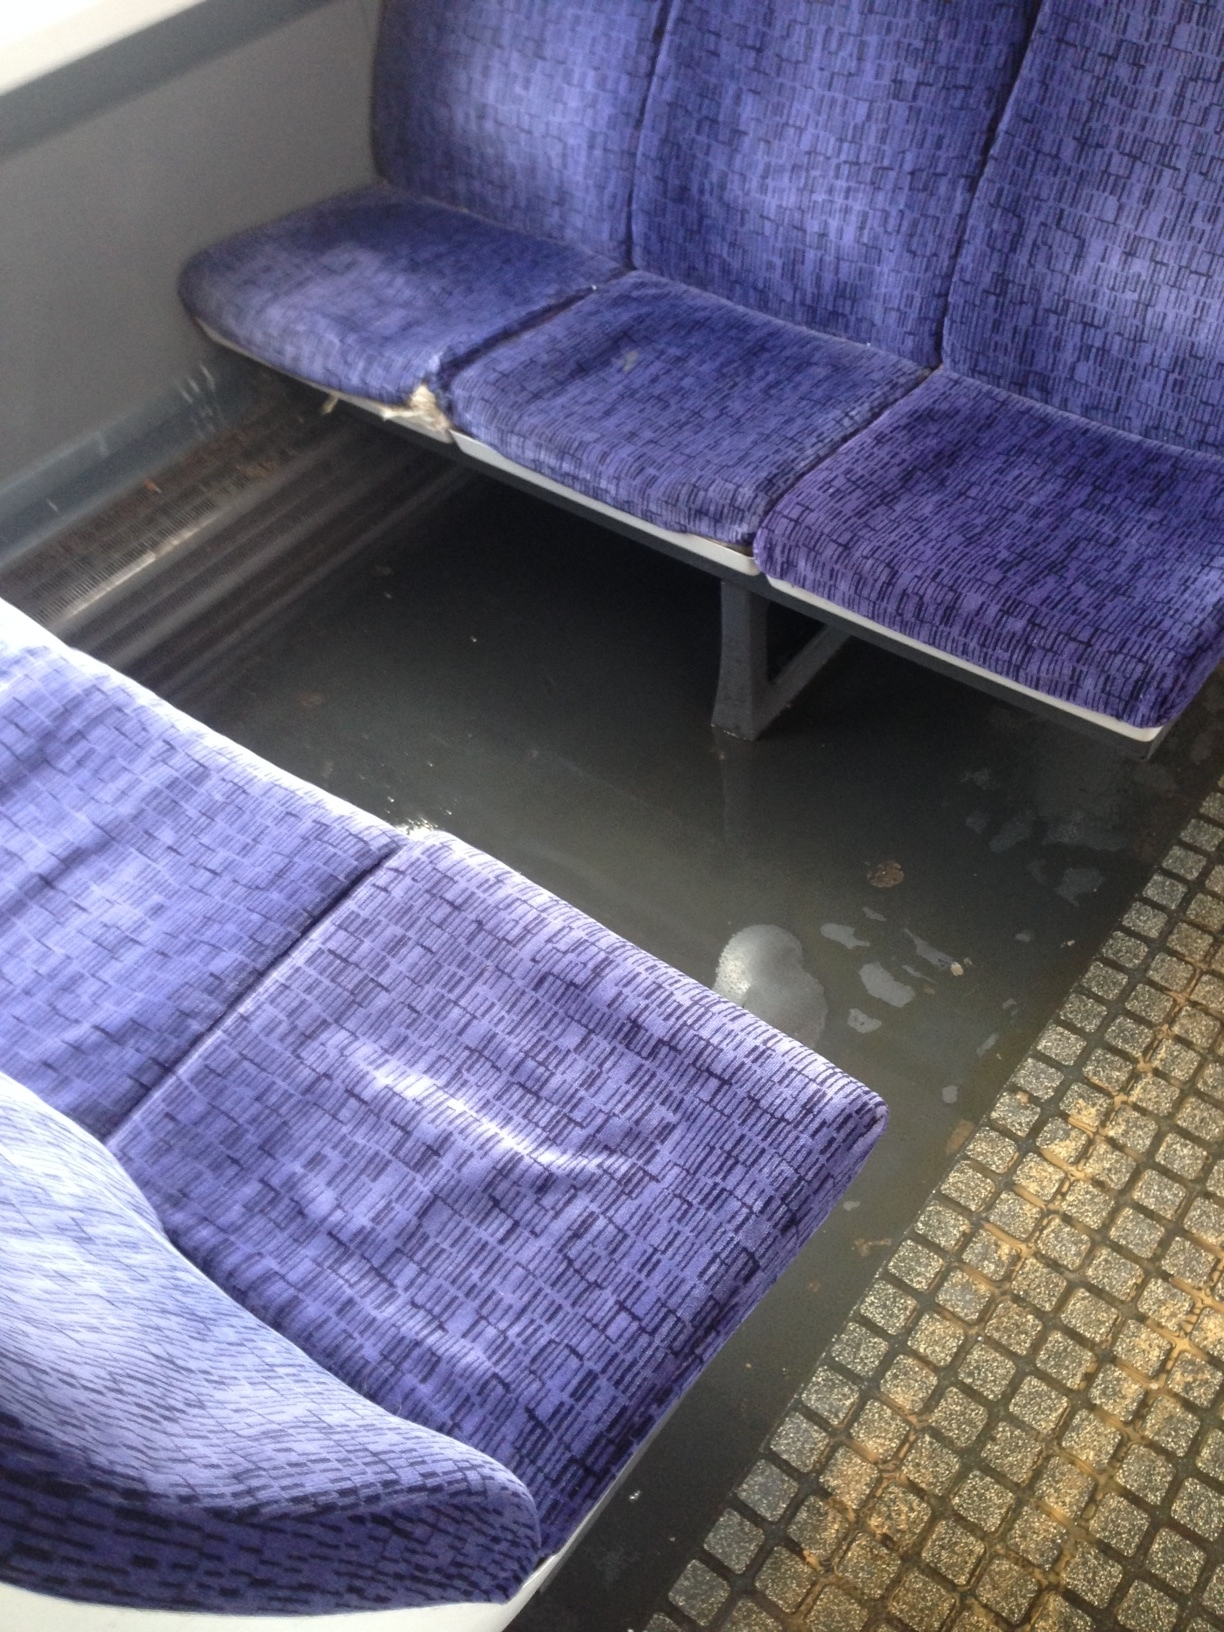 New Beckenham Southeastern train taken out of service due to 'unbearable stench'